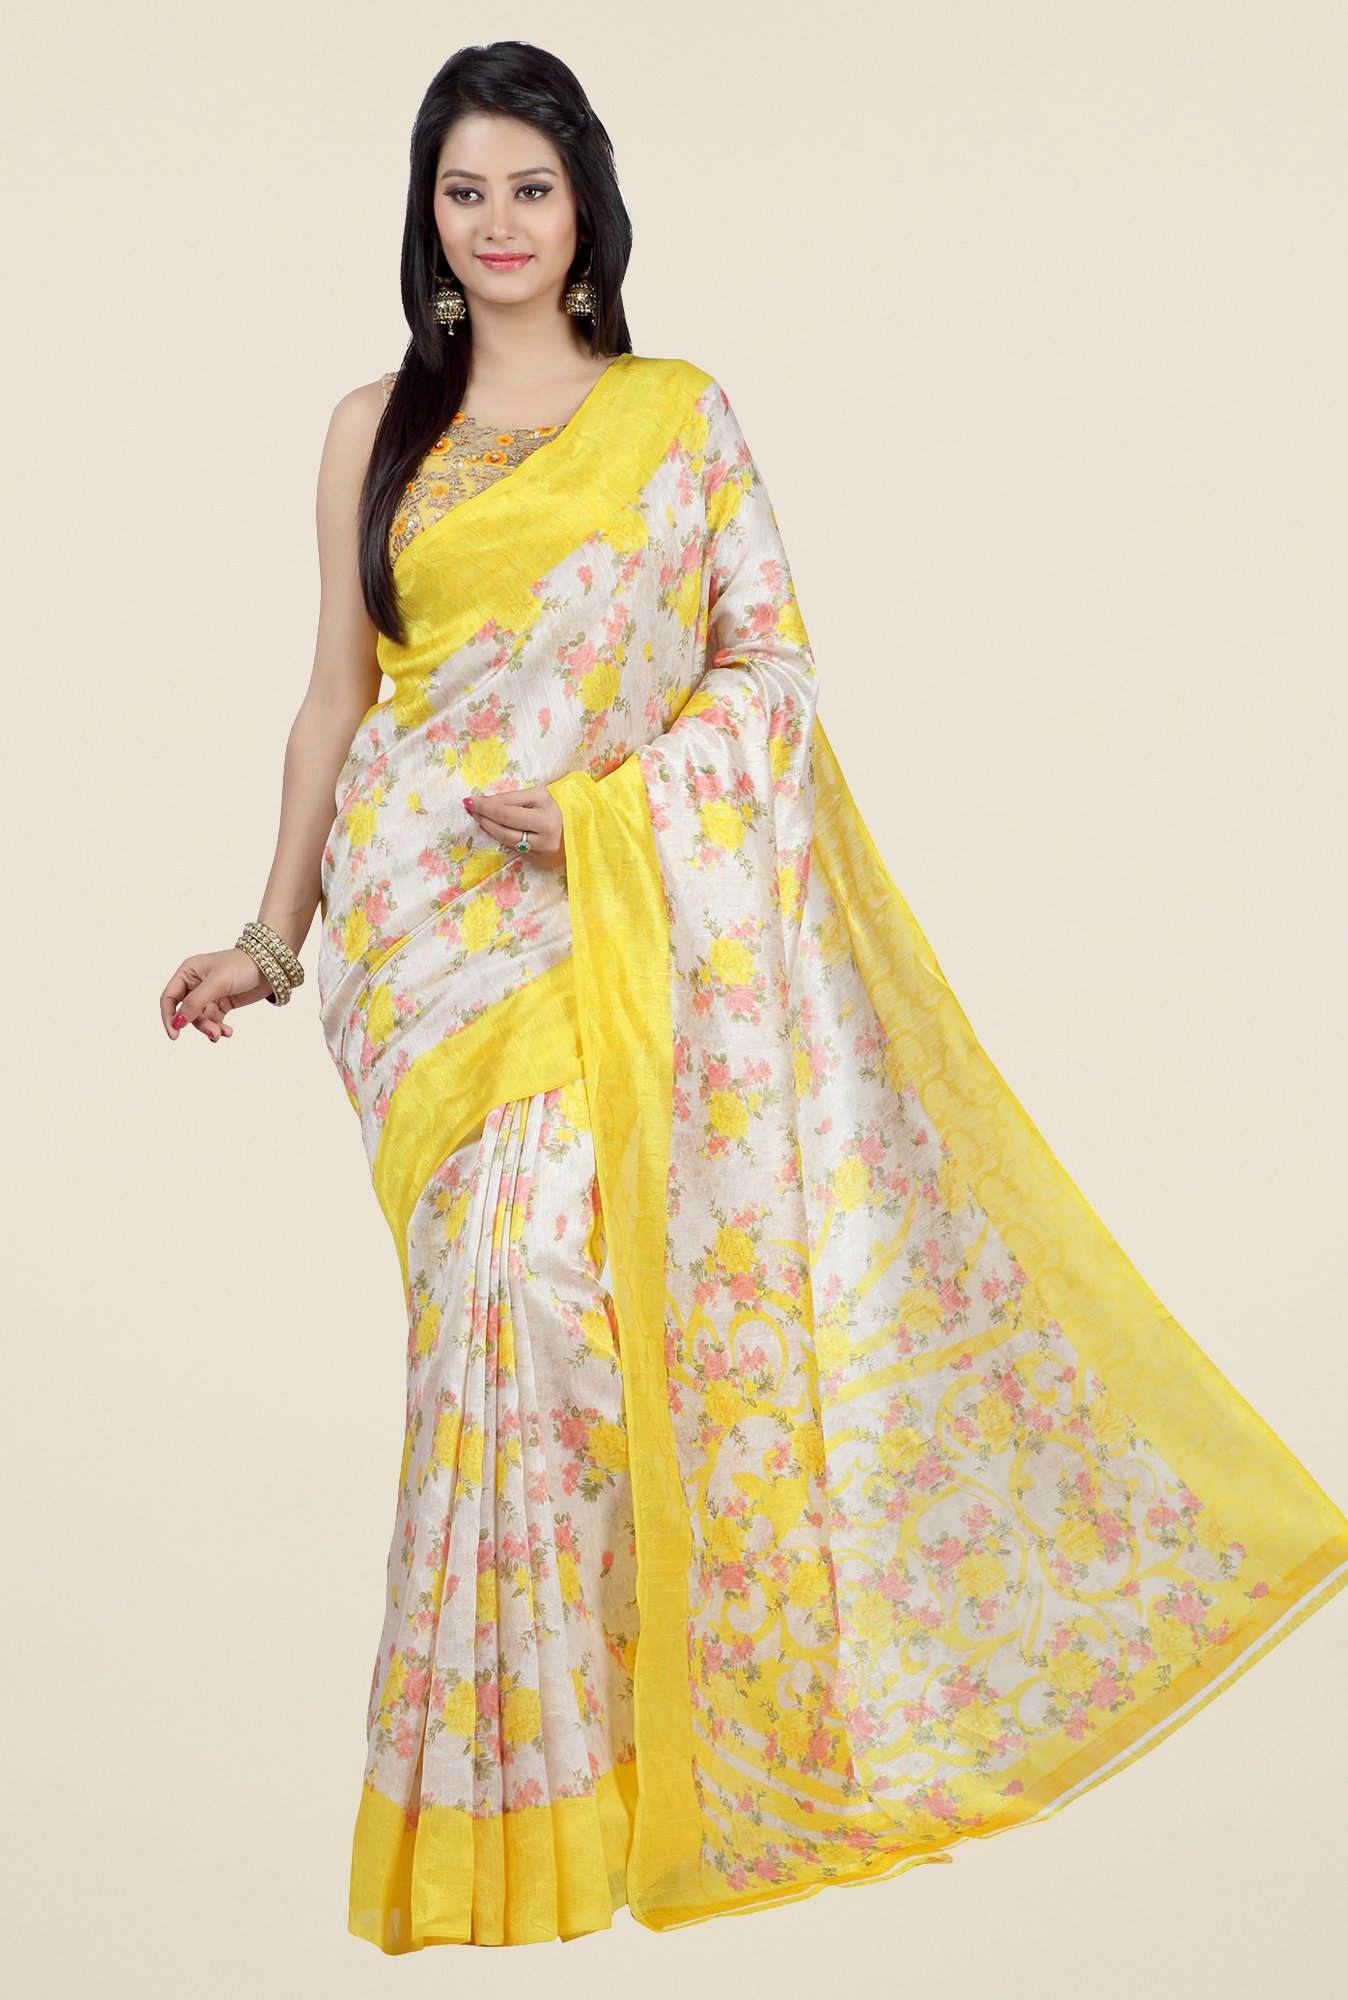 Jashn Beige and Yellow Floral Print Jacquard Saree